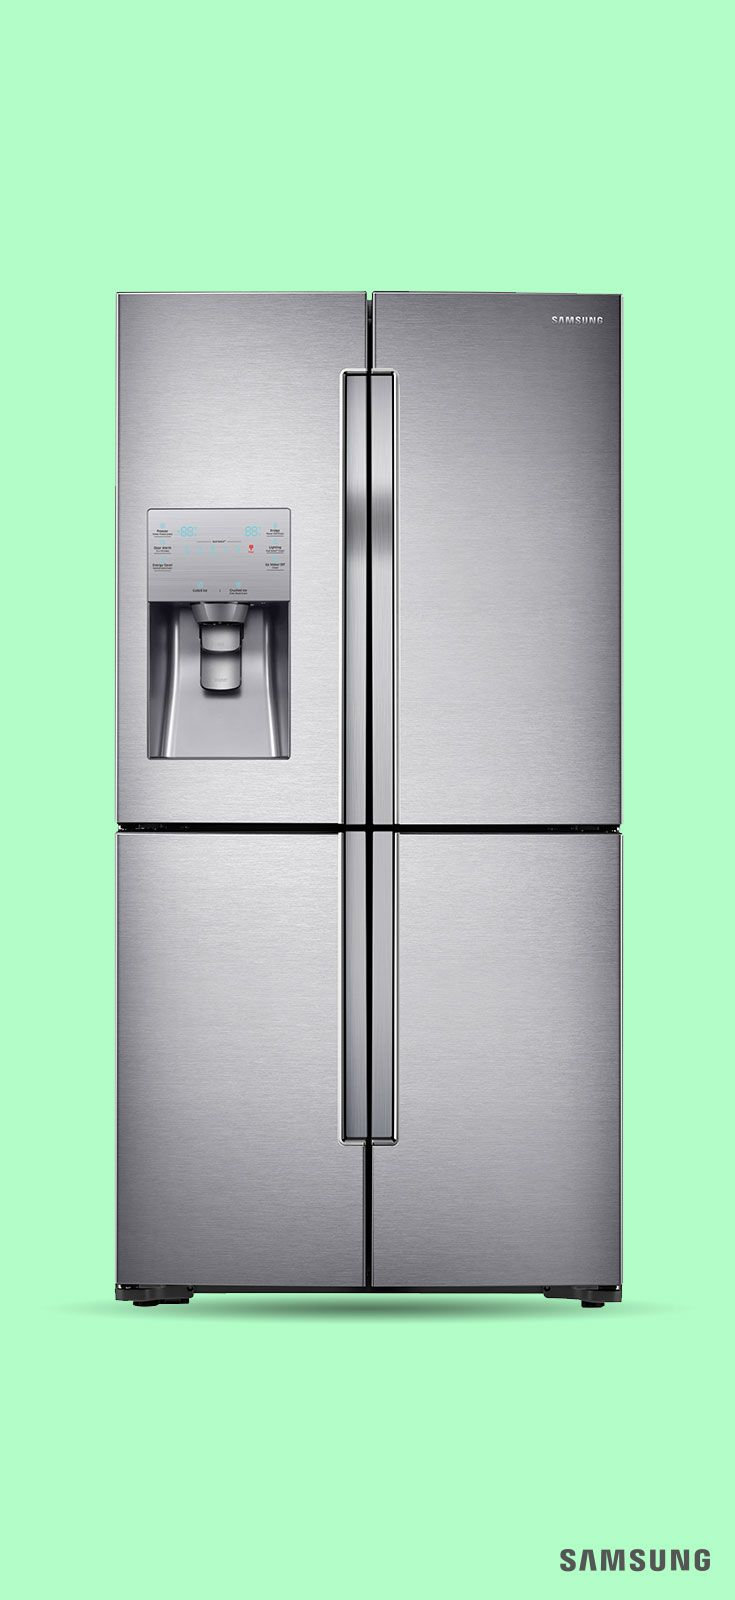 Check Off A Kitchen Remodel Must Have With Our Samsung 4 Door Flex Refrigerator Designed To Fit Up 23 Bags Of Groceries This Energy Efficient Fridge